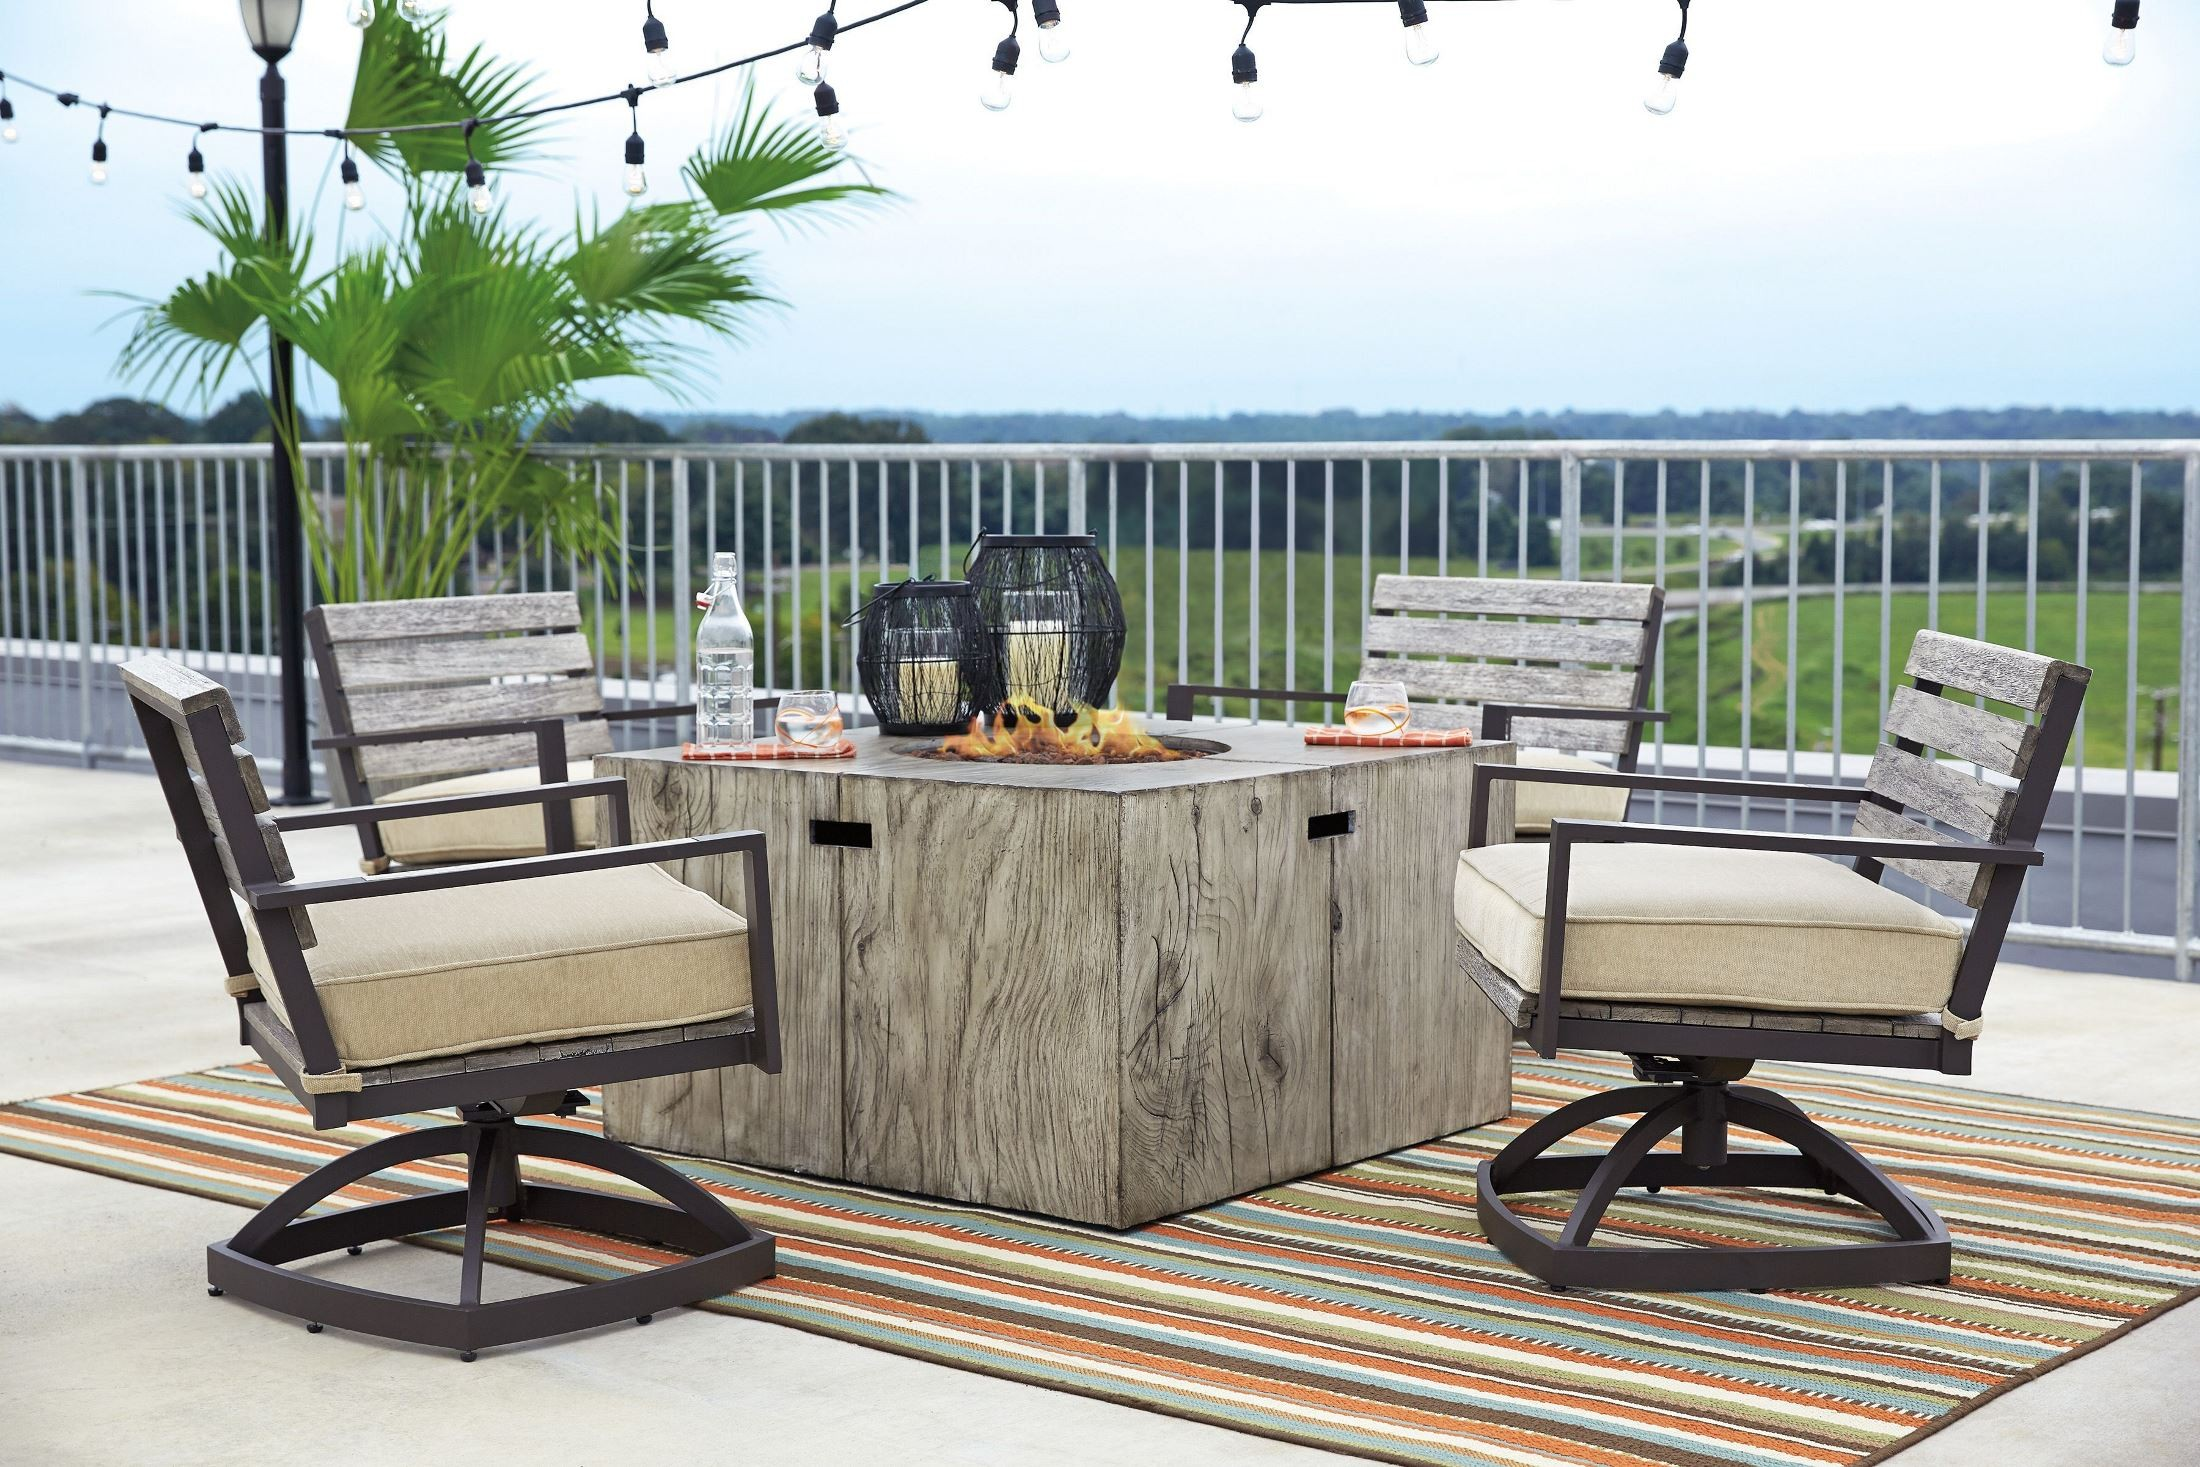 Peachstone beige and brown square fire pit outdoor dining